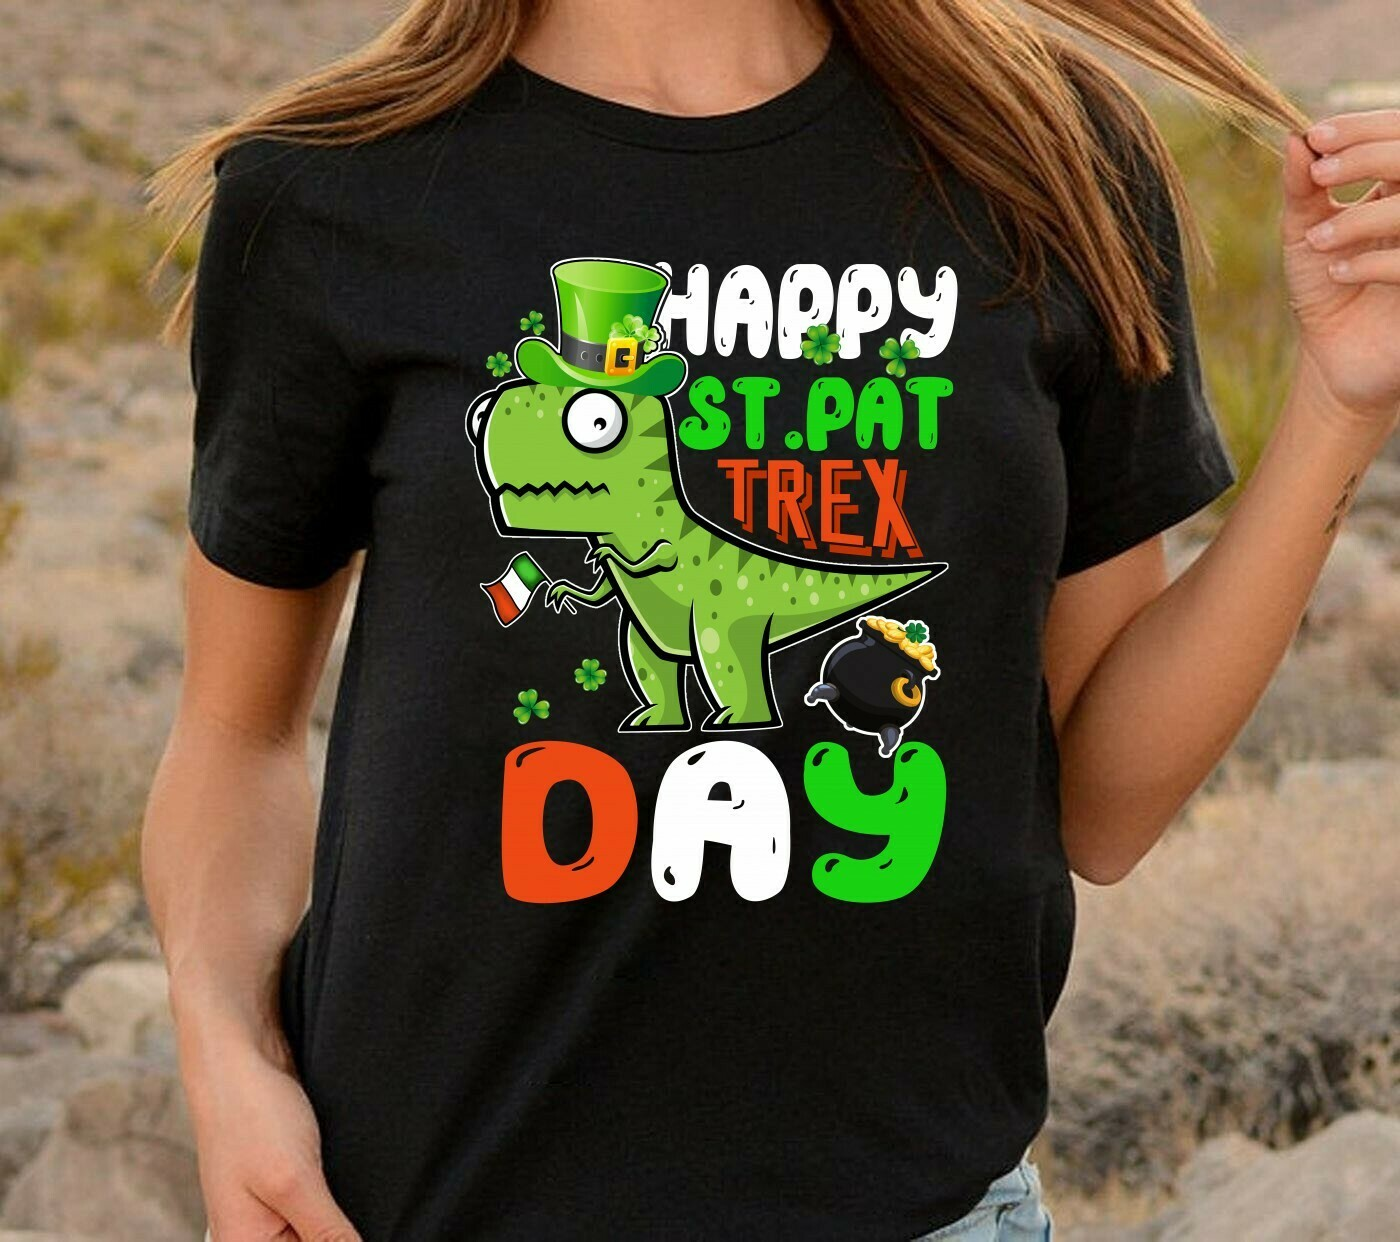 Happy St. Pat T-rex Day Cute St. Patrick's Pun,Irish Dinosaur Luckysaurus Shamrock  T-Shirt Sweatshirt Hoodie Long Sleeve Tee Kids Youth Gifts Jolly Family Gifts